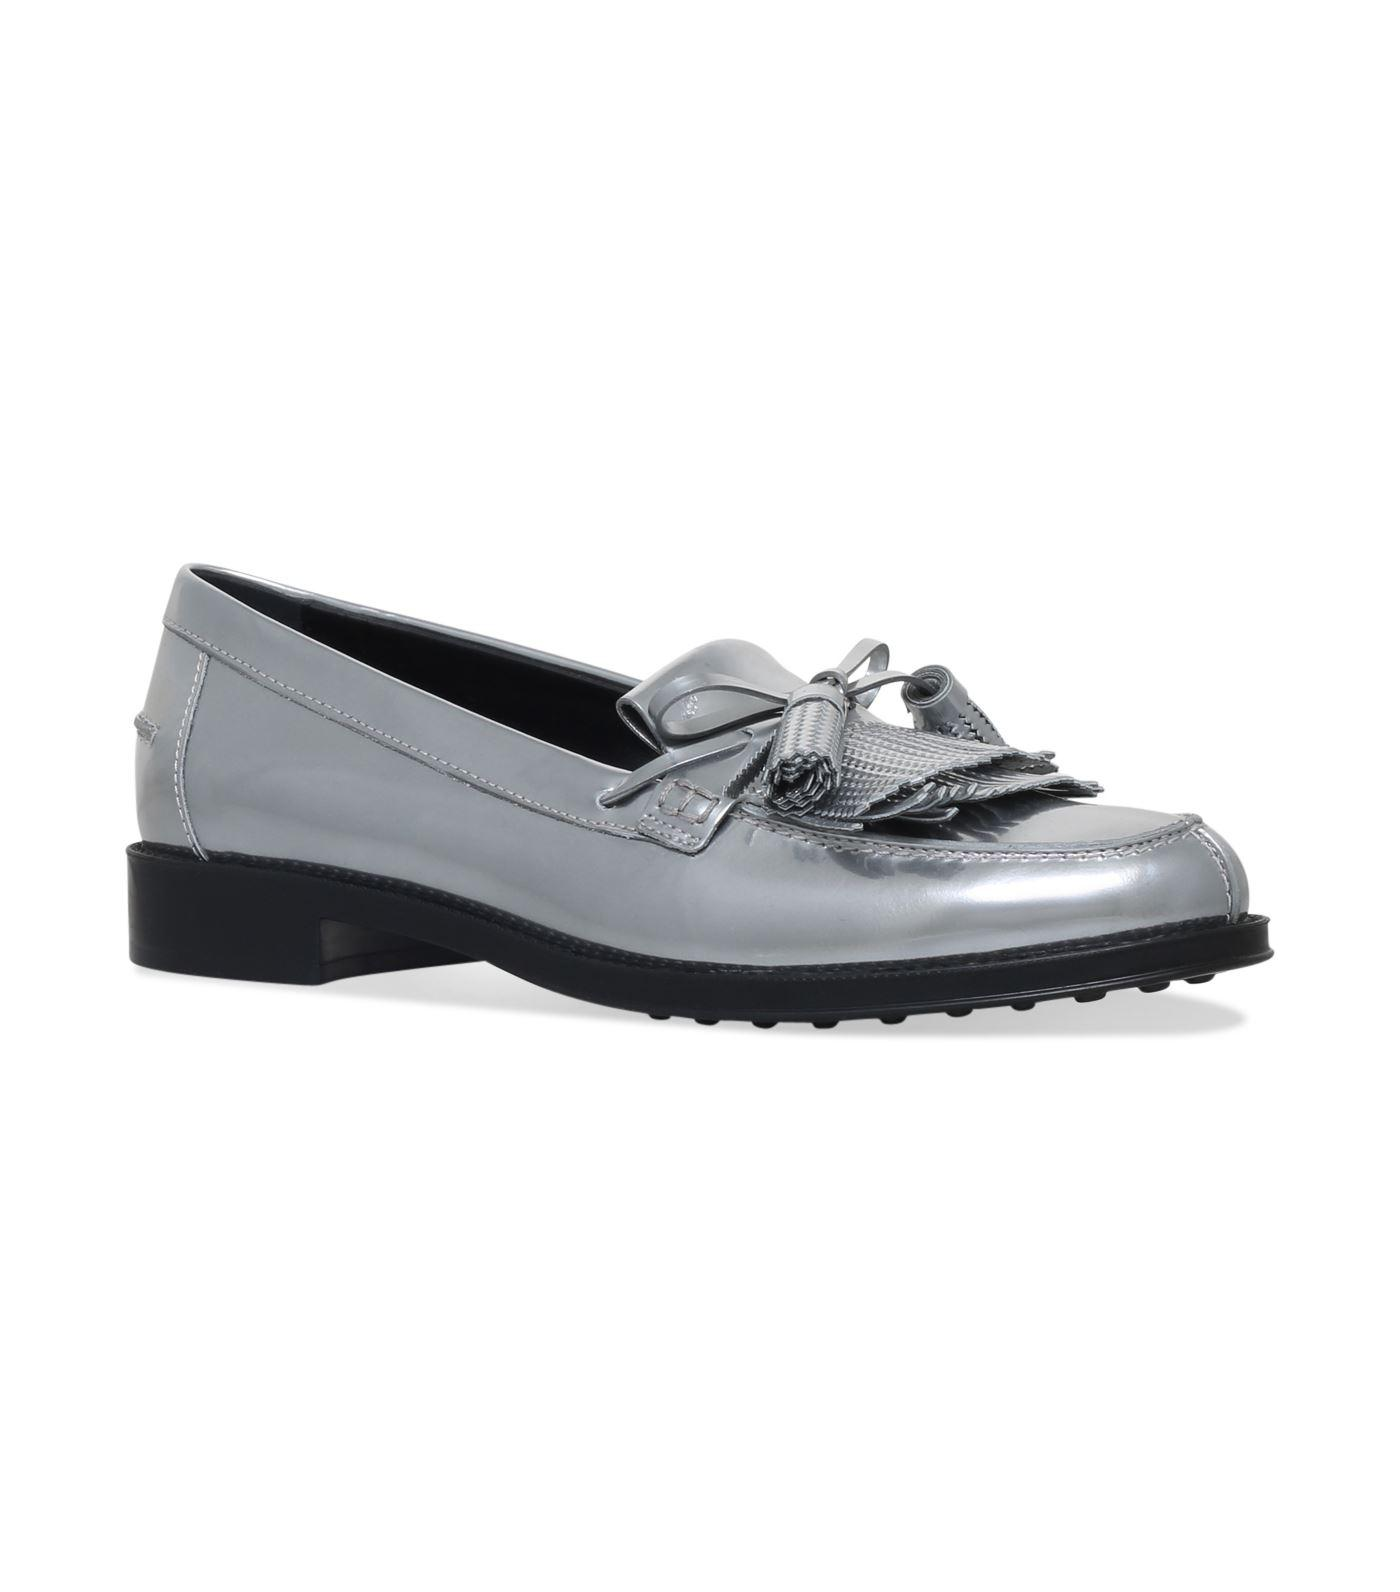 b3bb0d11944 Tod. TOD S. Gomma Metallic Loafer in Silver